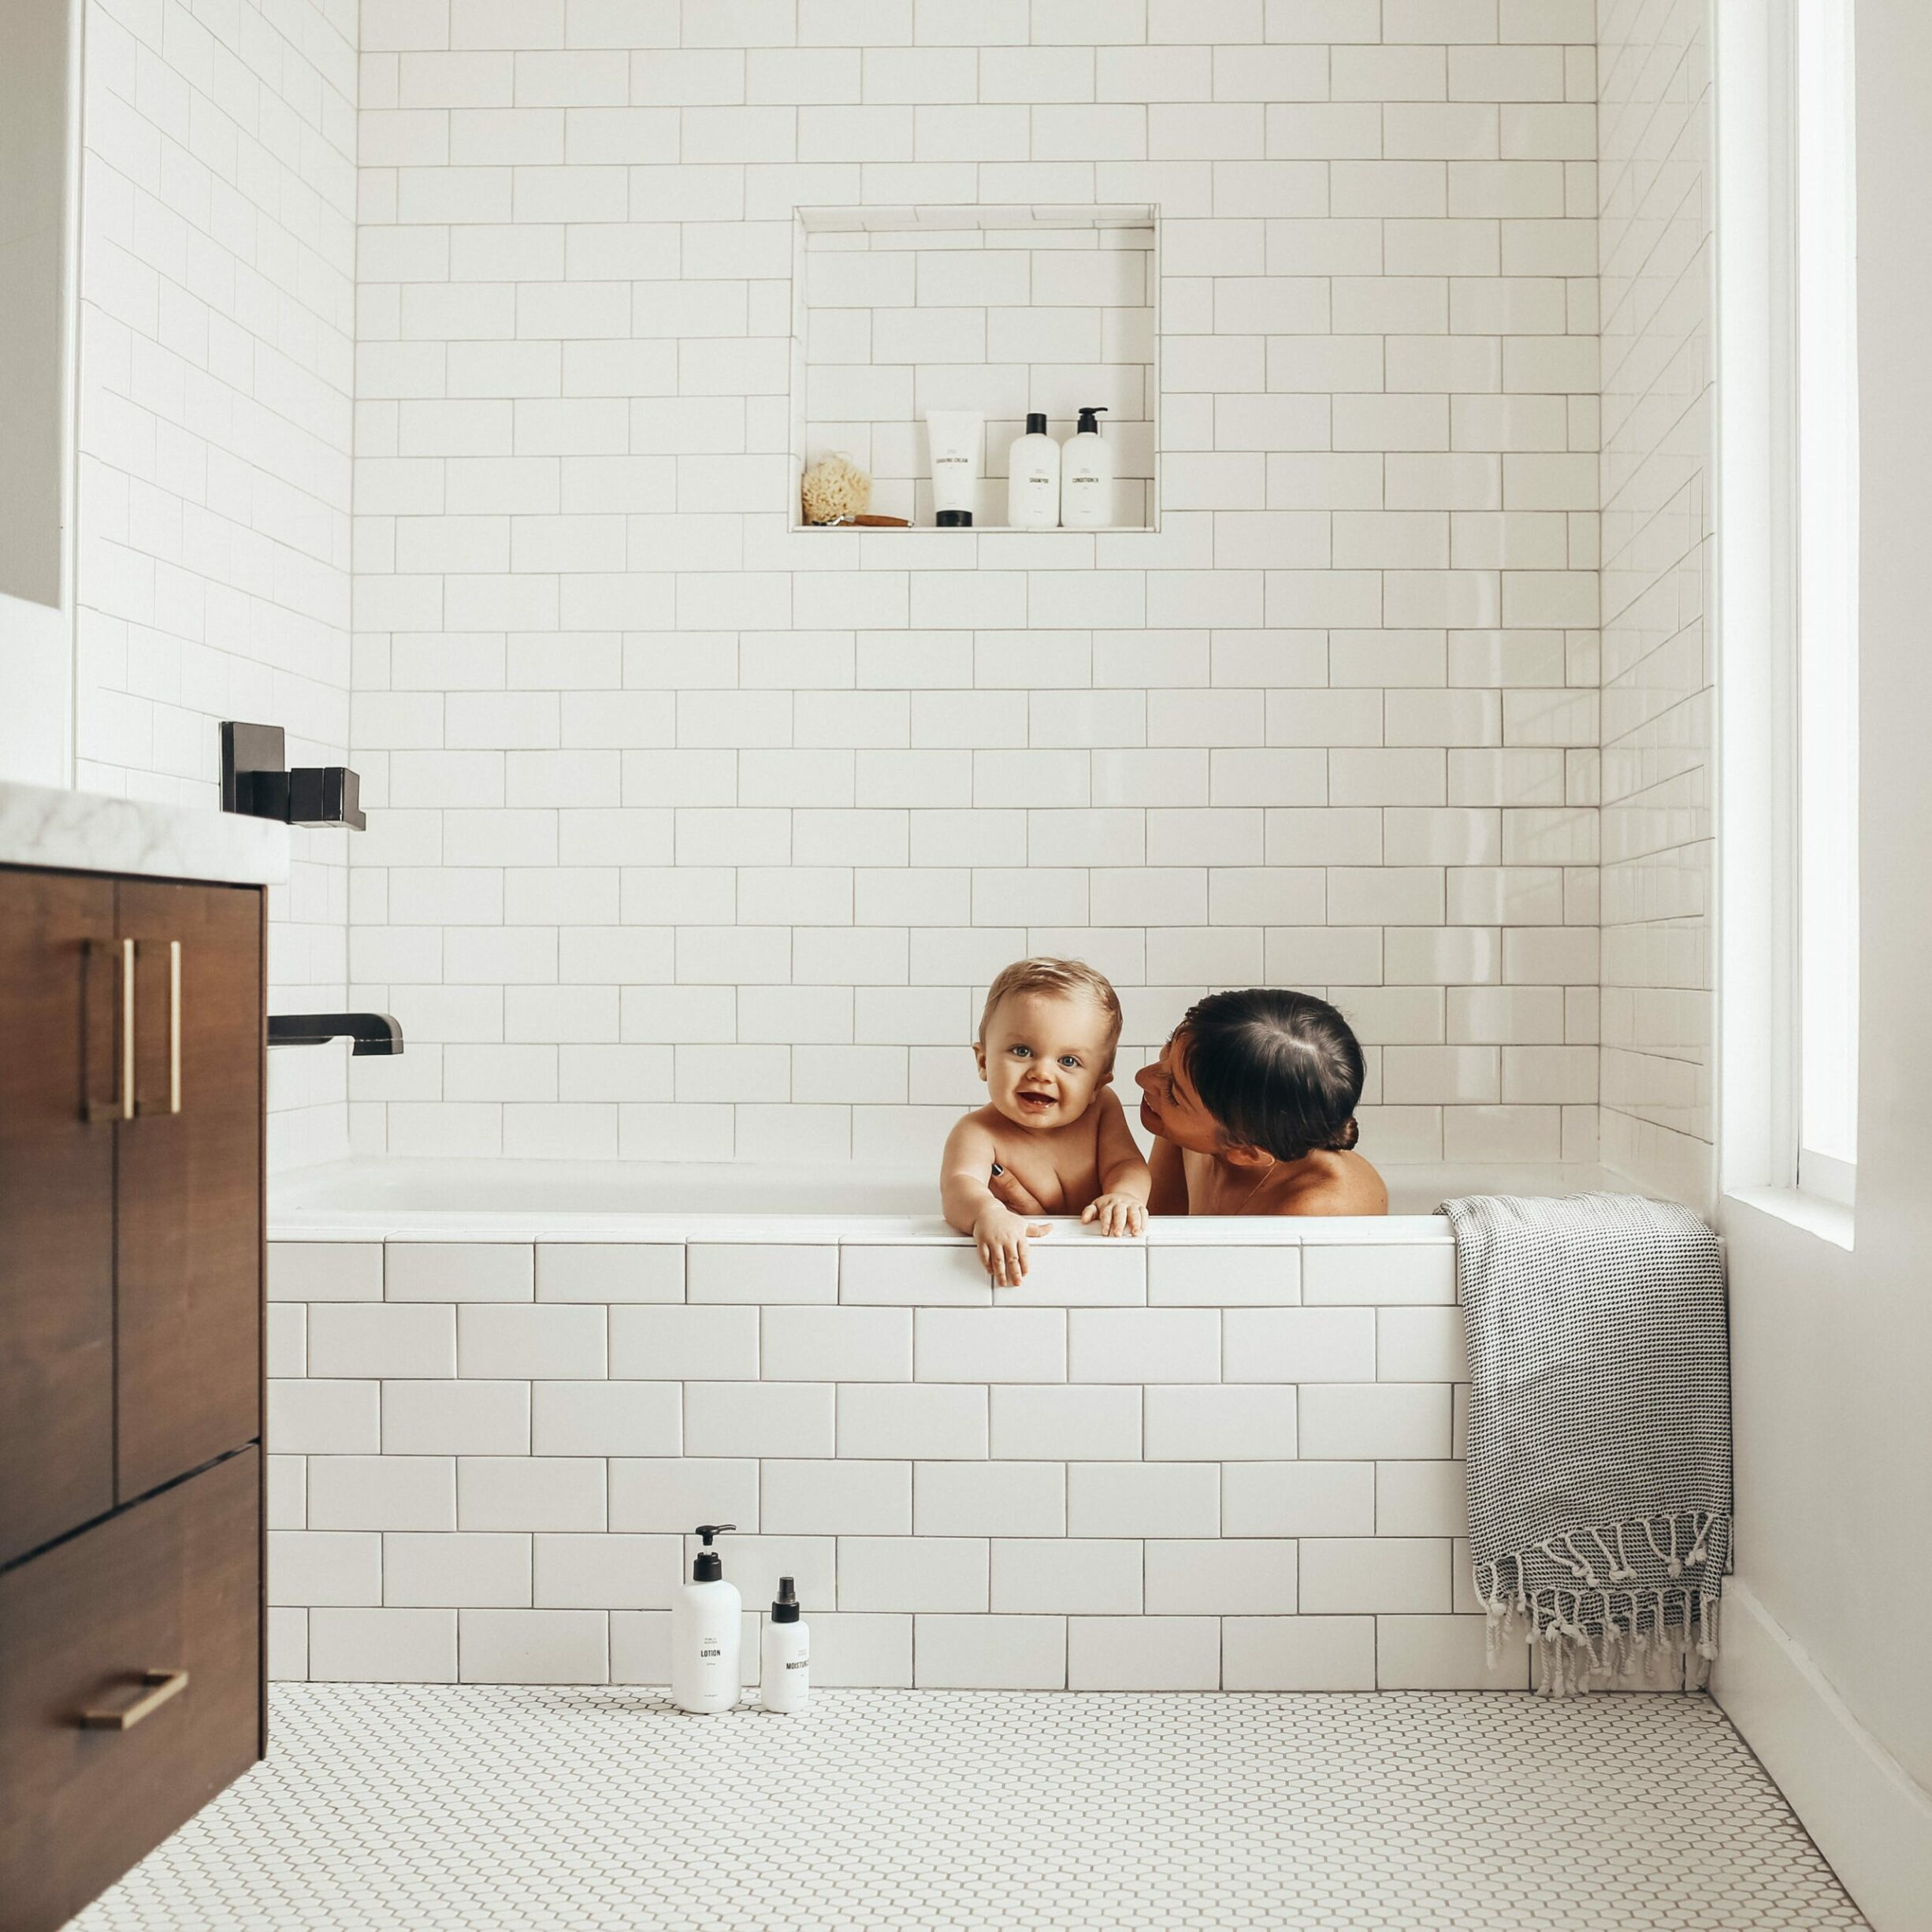 mother and child inside a bath tub using public goods products